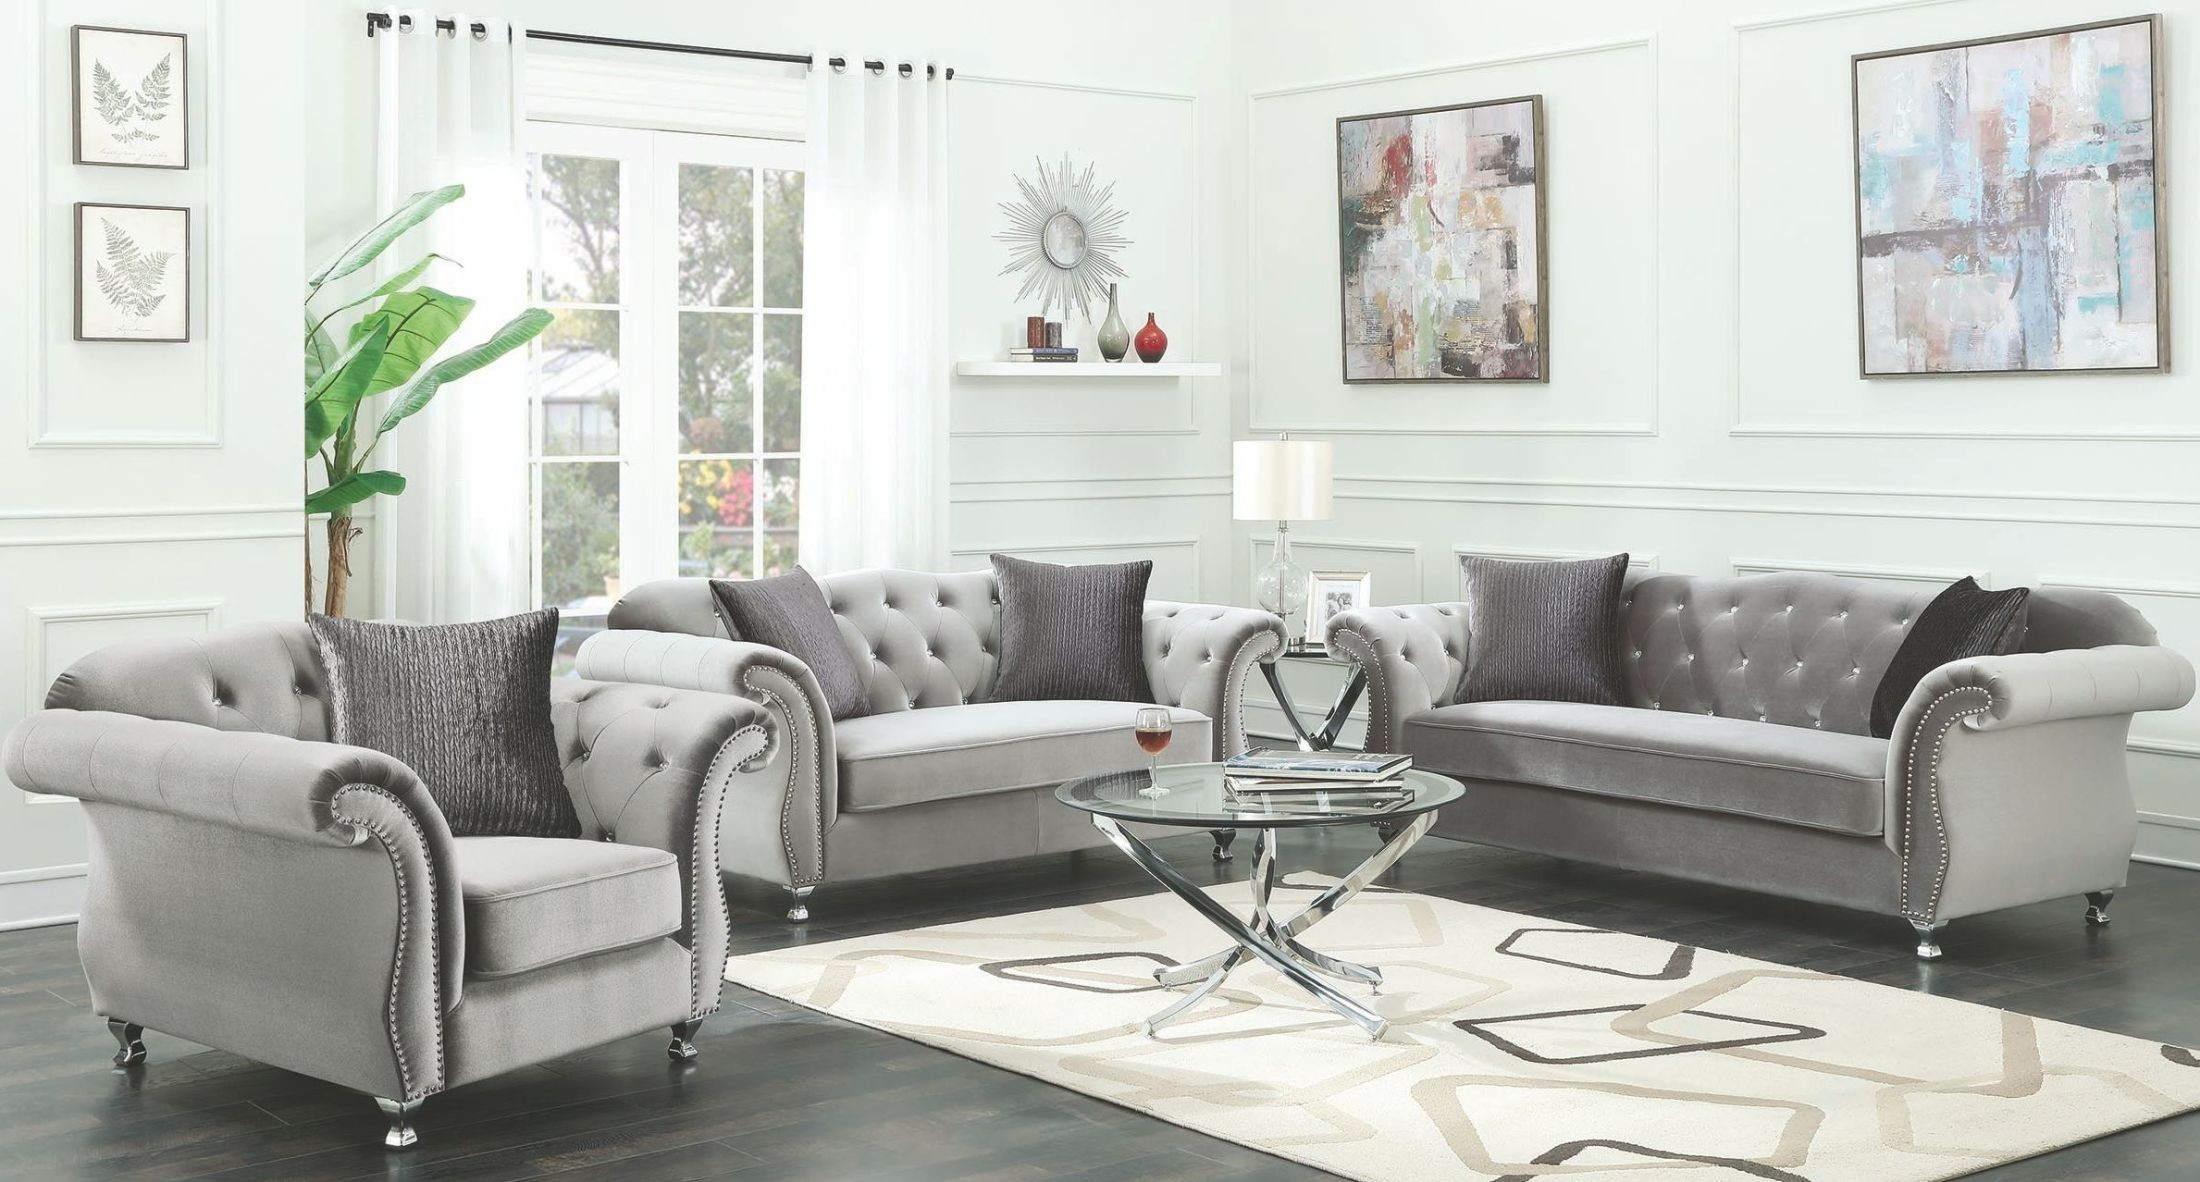 Frostine silver living room set 551161 coaster furniture for Cloud lounge and living room